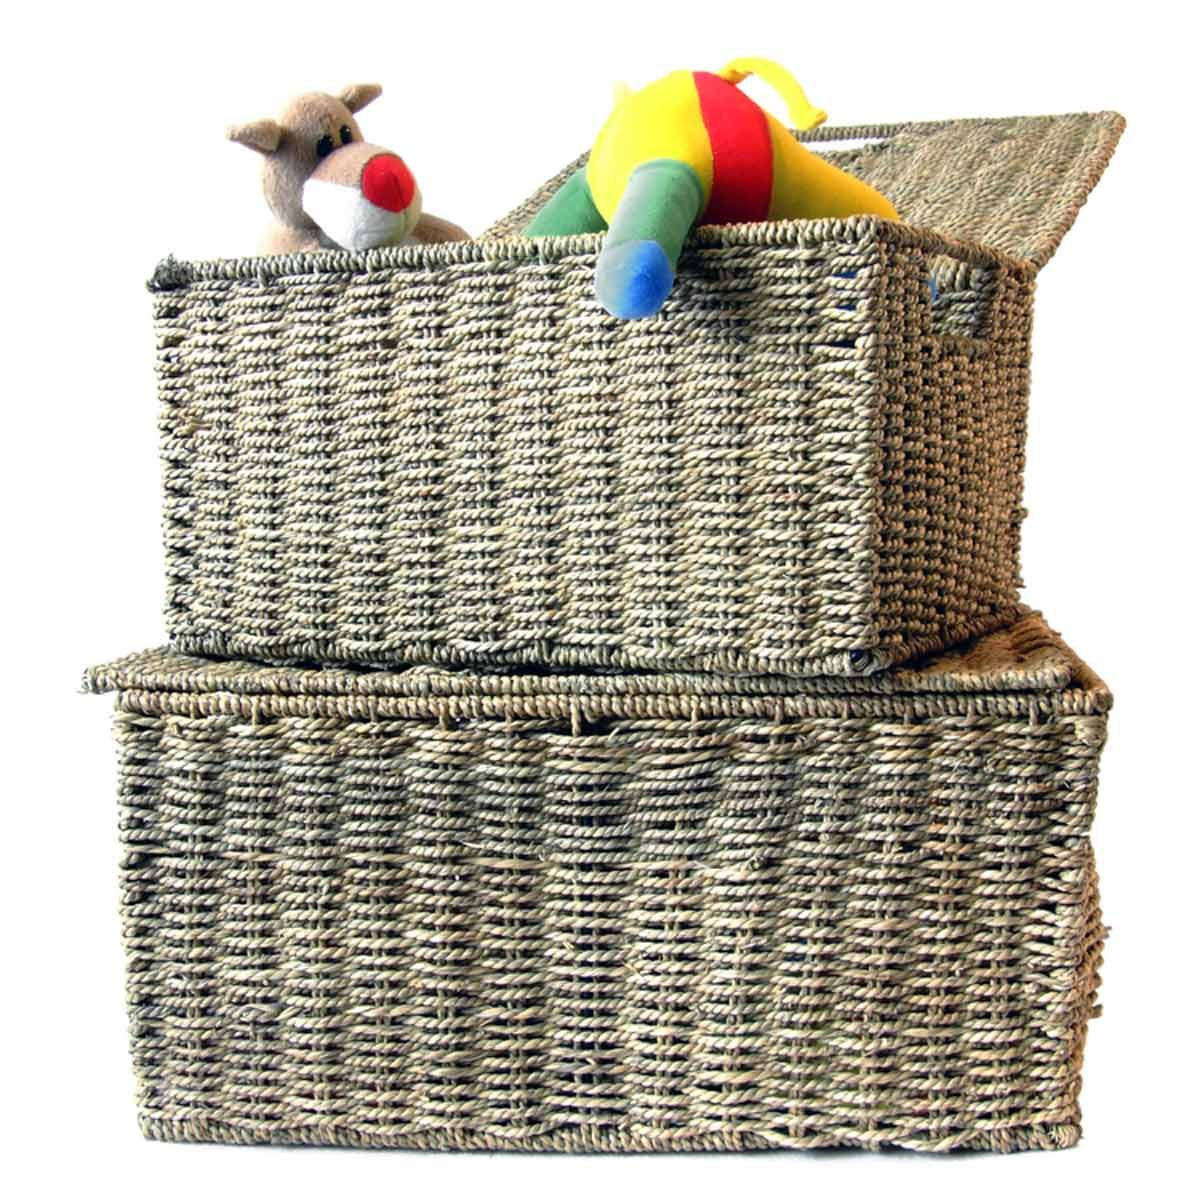 Gather Wicker Baskets for Toy Storage